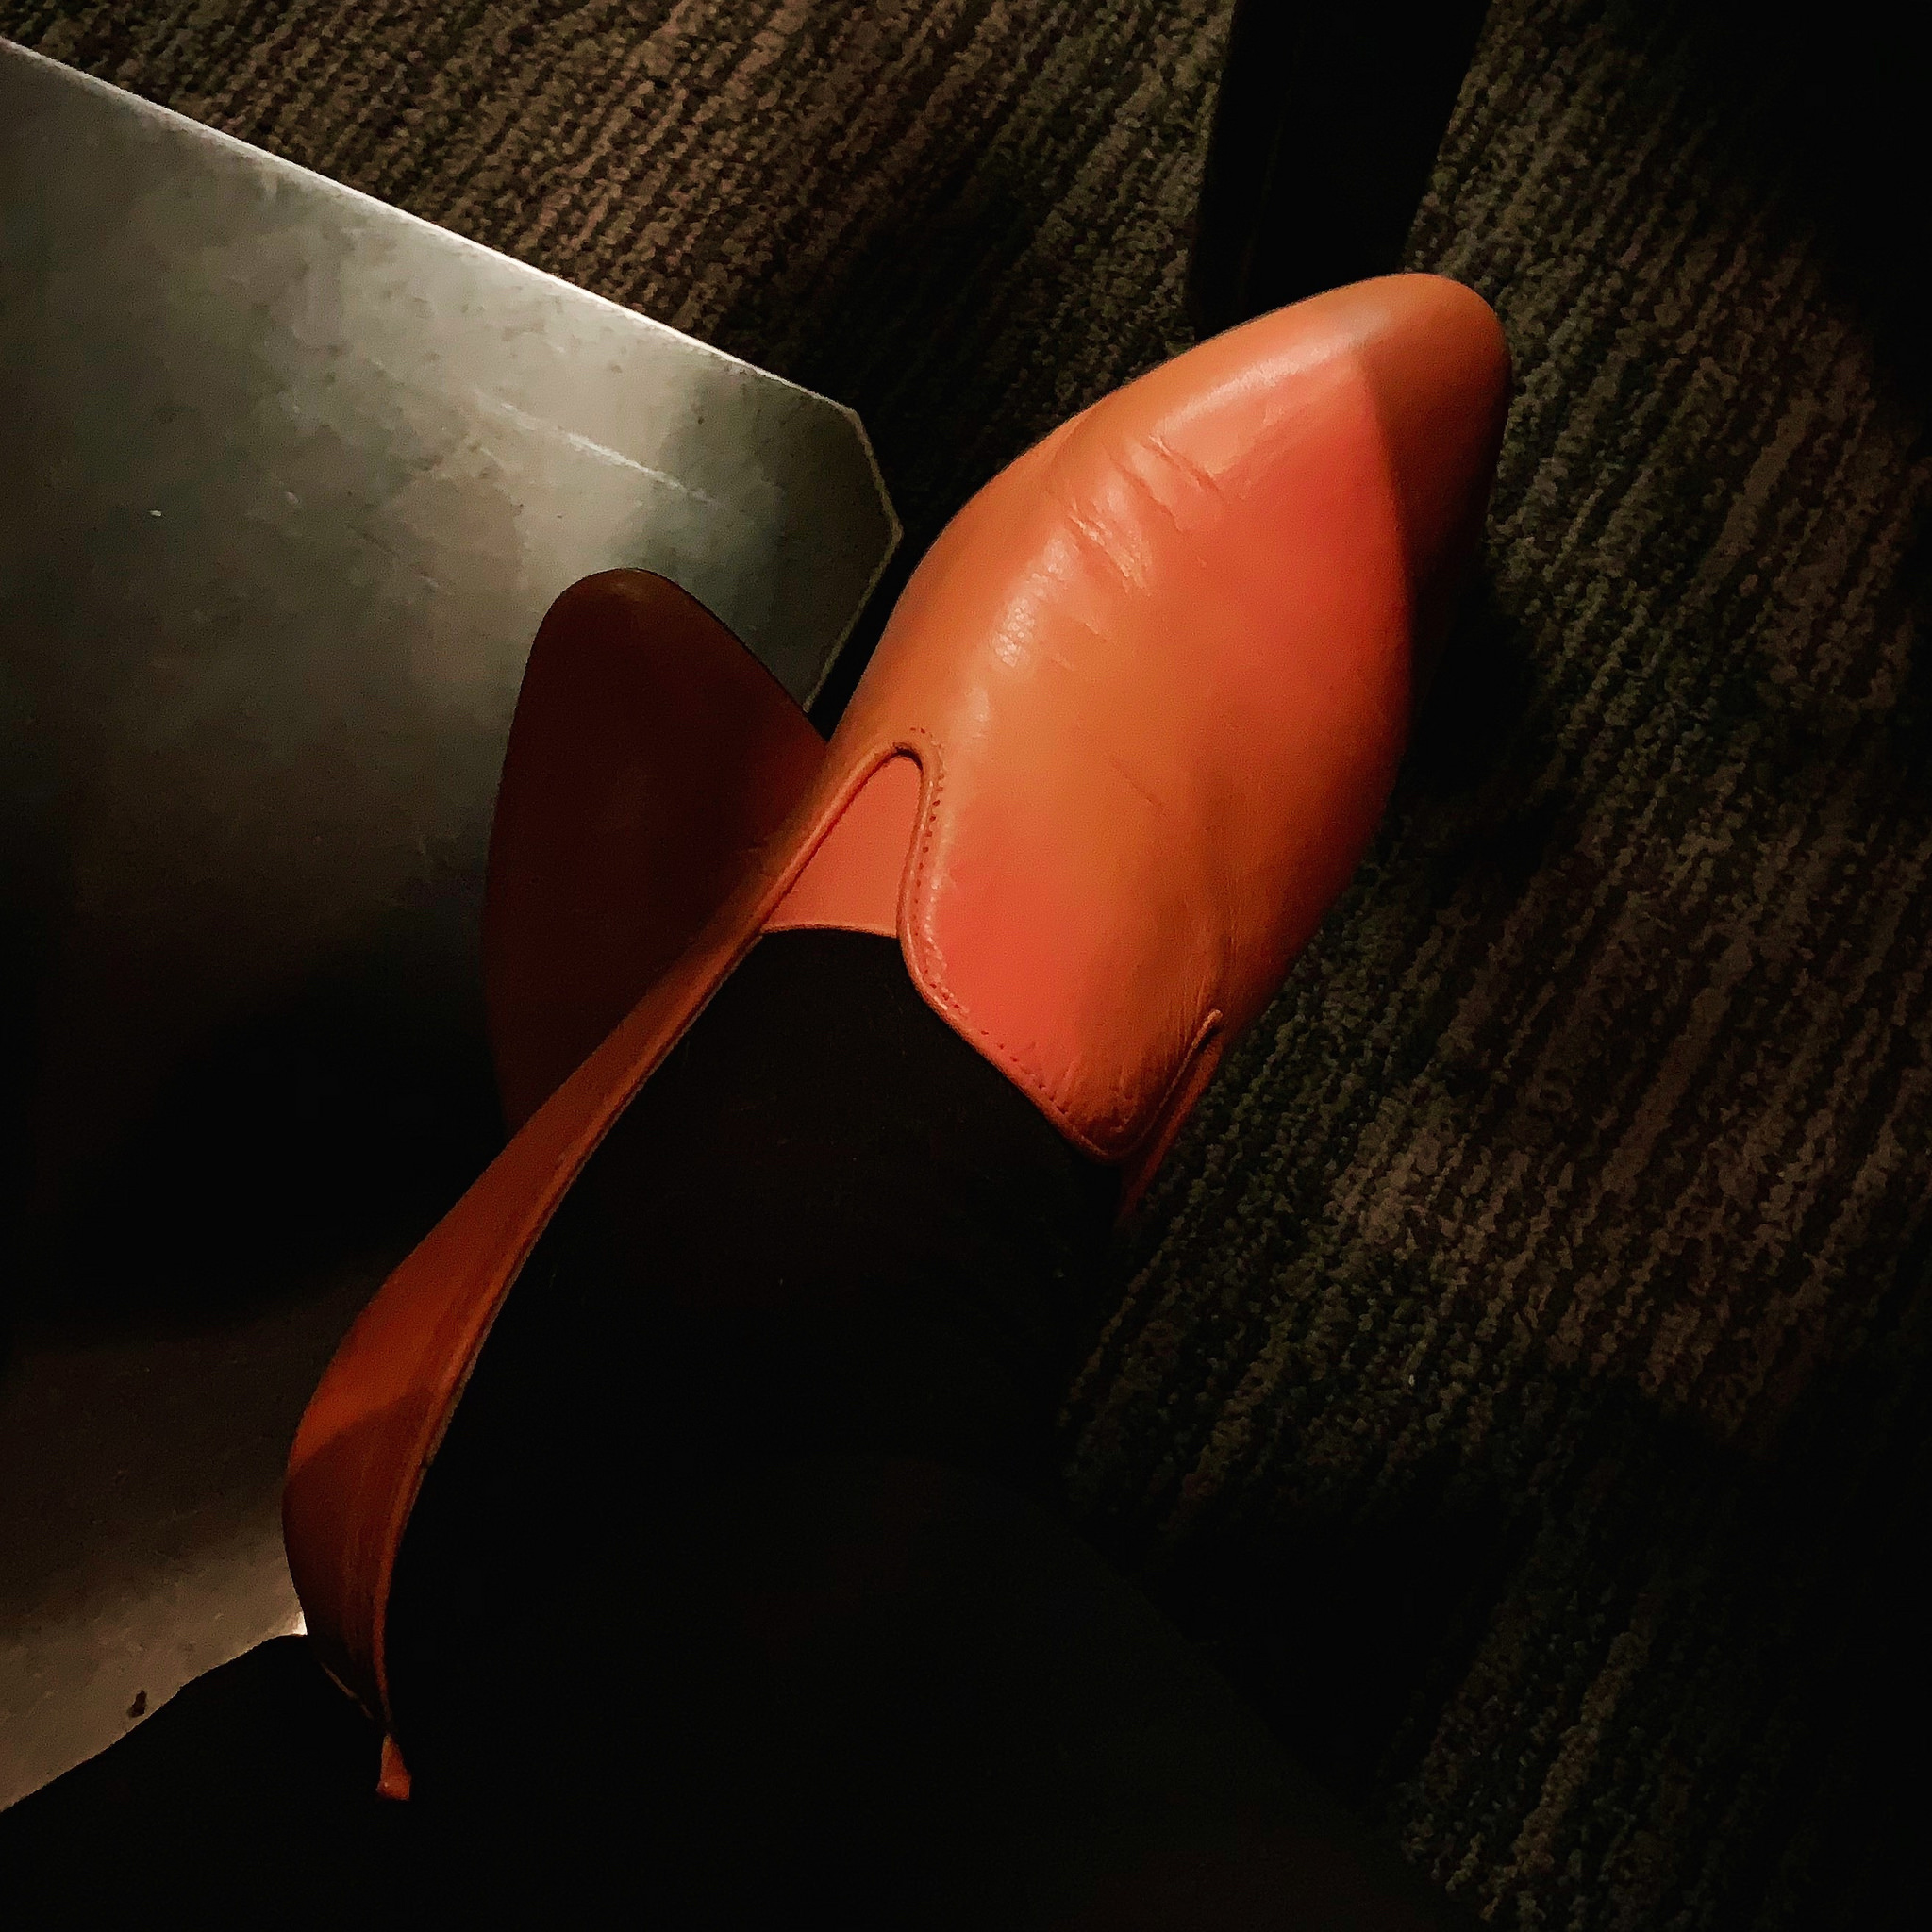 one orange leather ESH by Estée Isman slip-on shoe as seen under a table